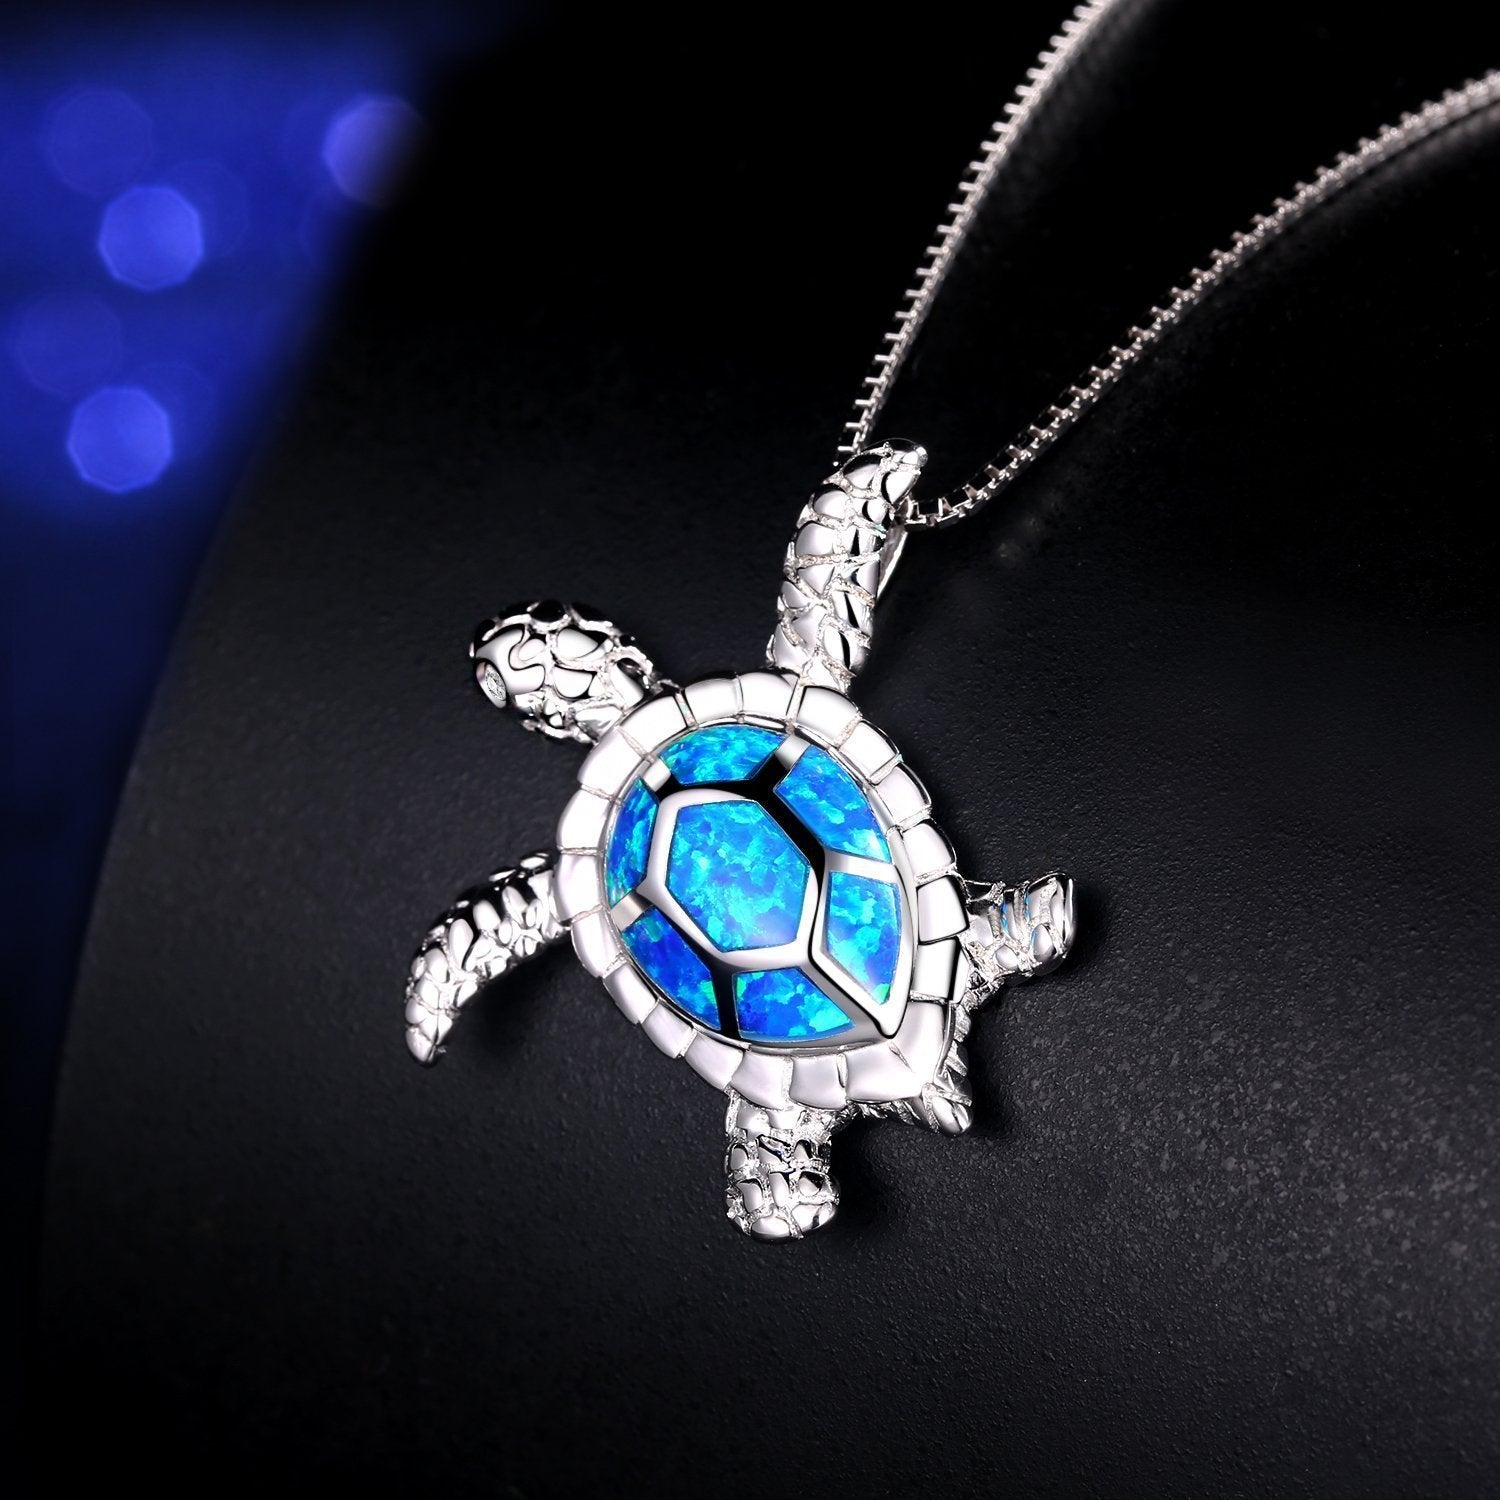 Blue opal sea turtle pendant necklace king passion blue opal sea turtle pendant necklace aloadofball Gallery